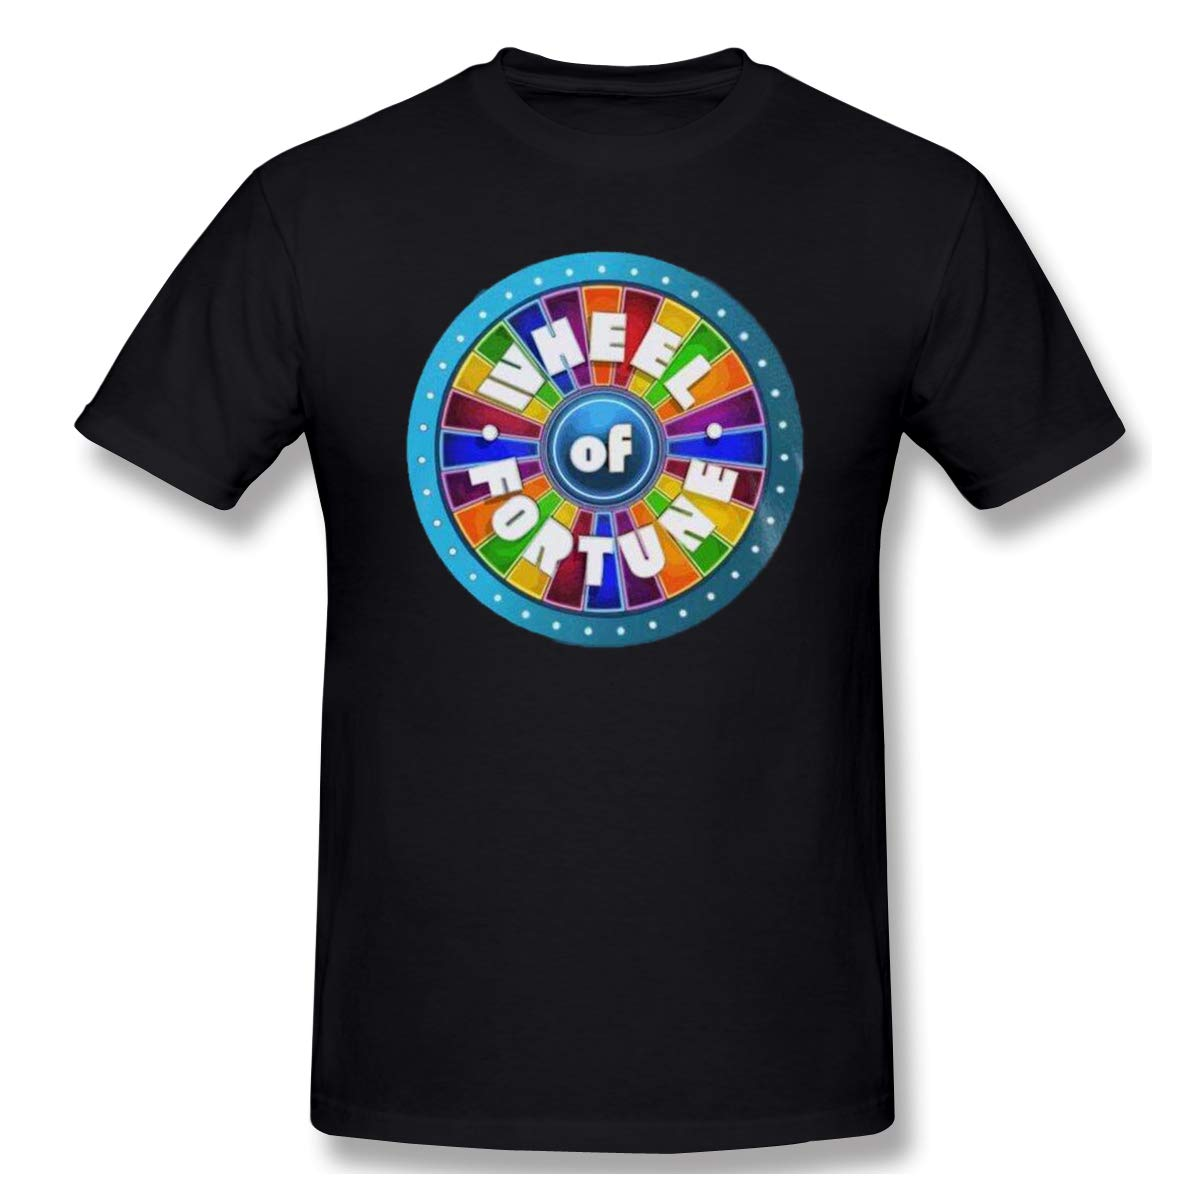 Gallagher Retro Wheel Of Fortune Cool Casual T Shirt Short Sleeve Tee For